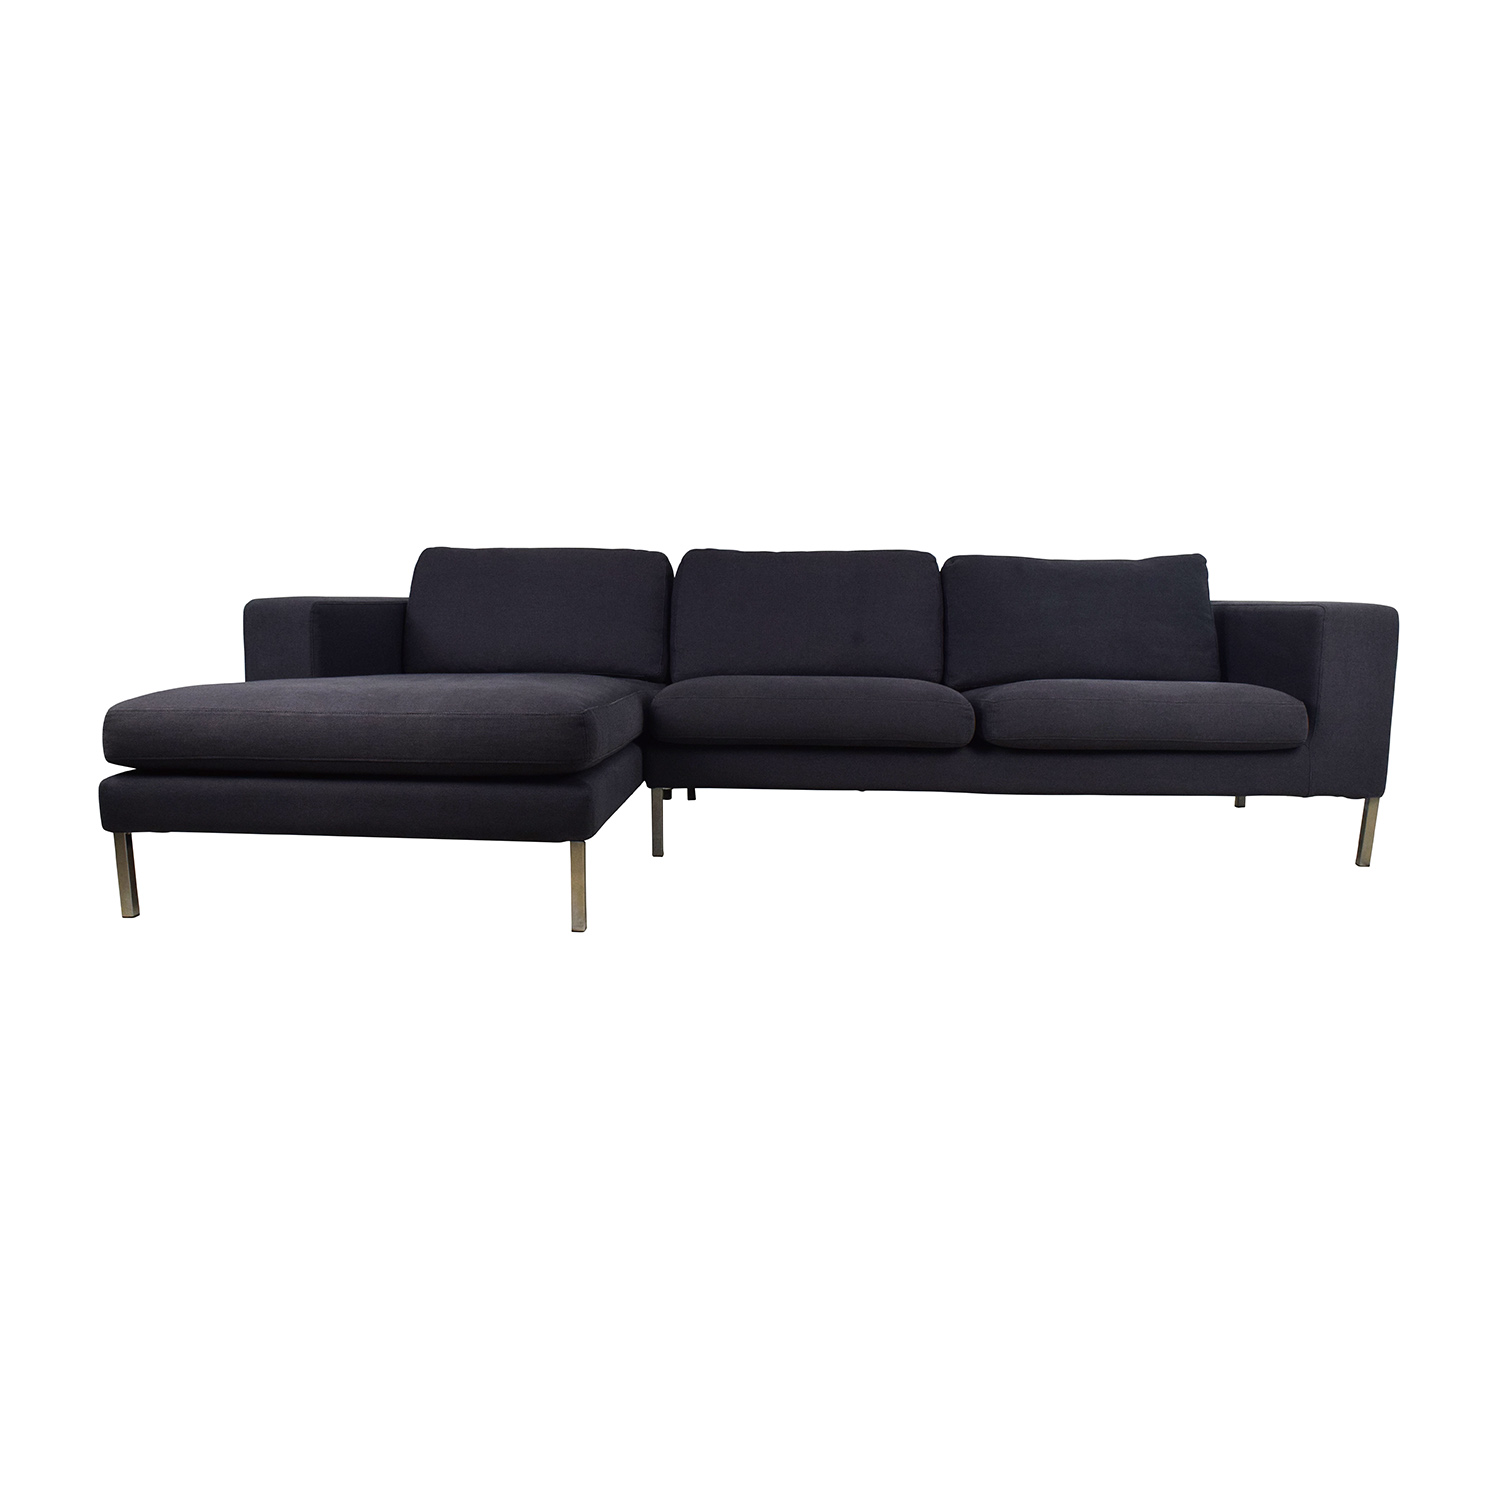 Joop Couch Kaiyo Furniture Reborn